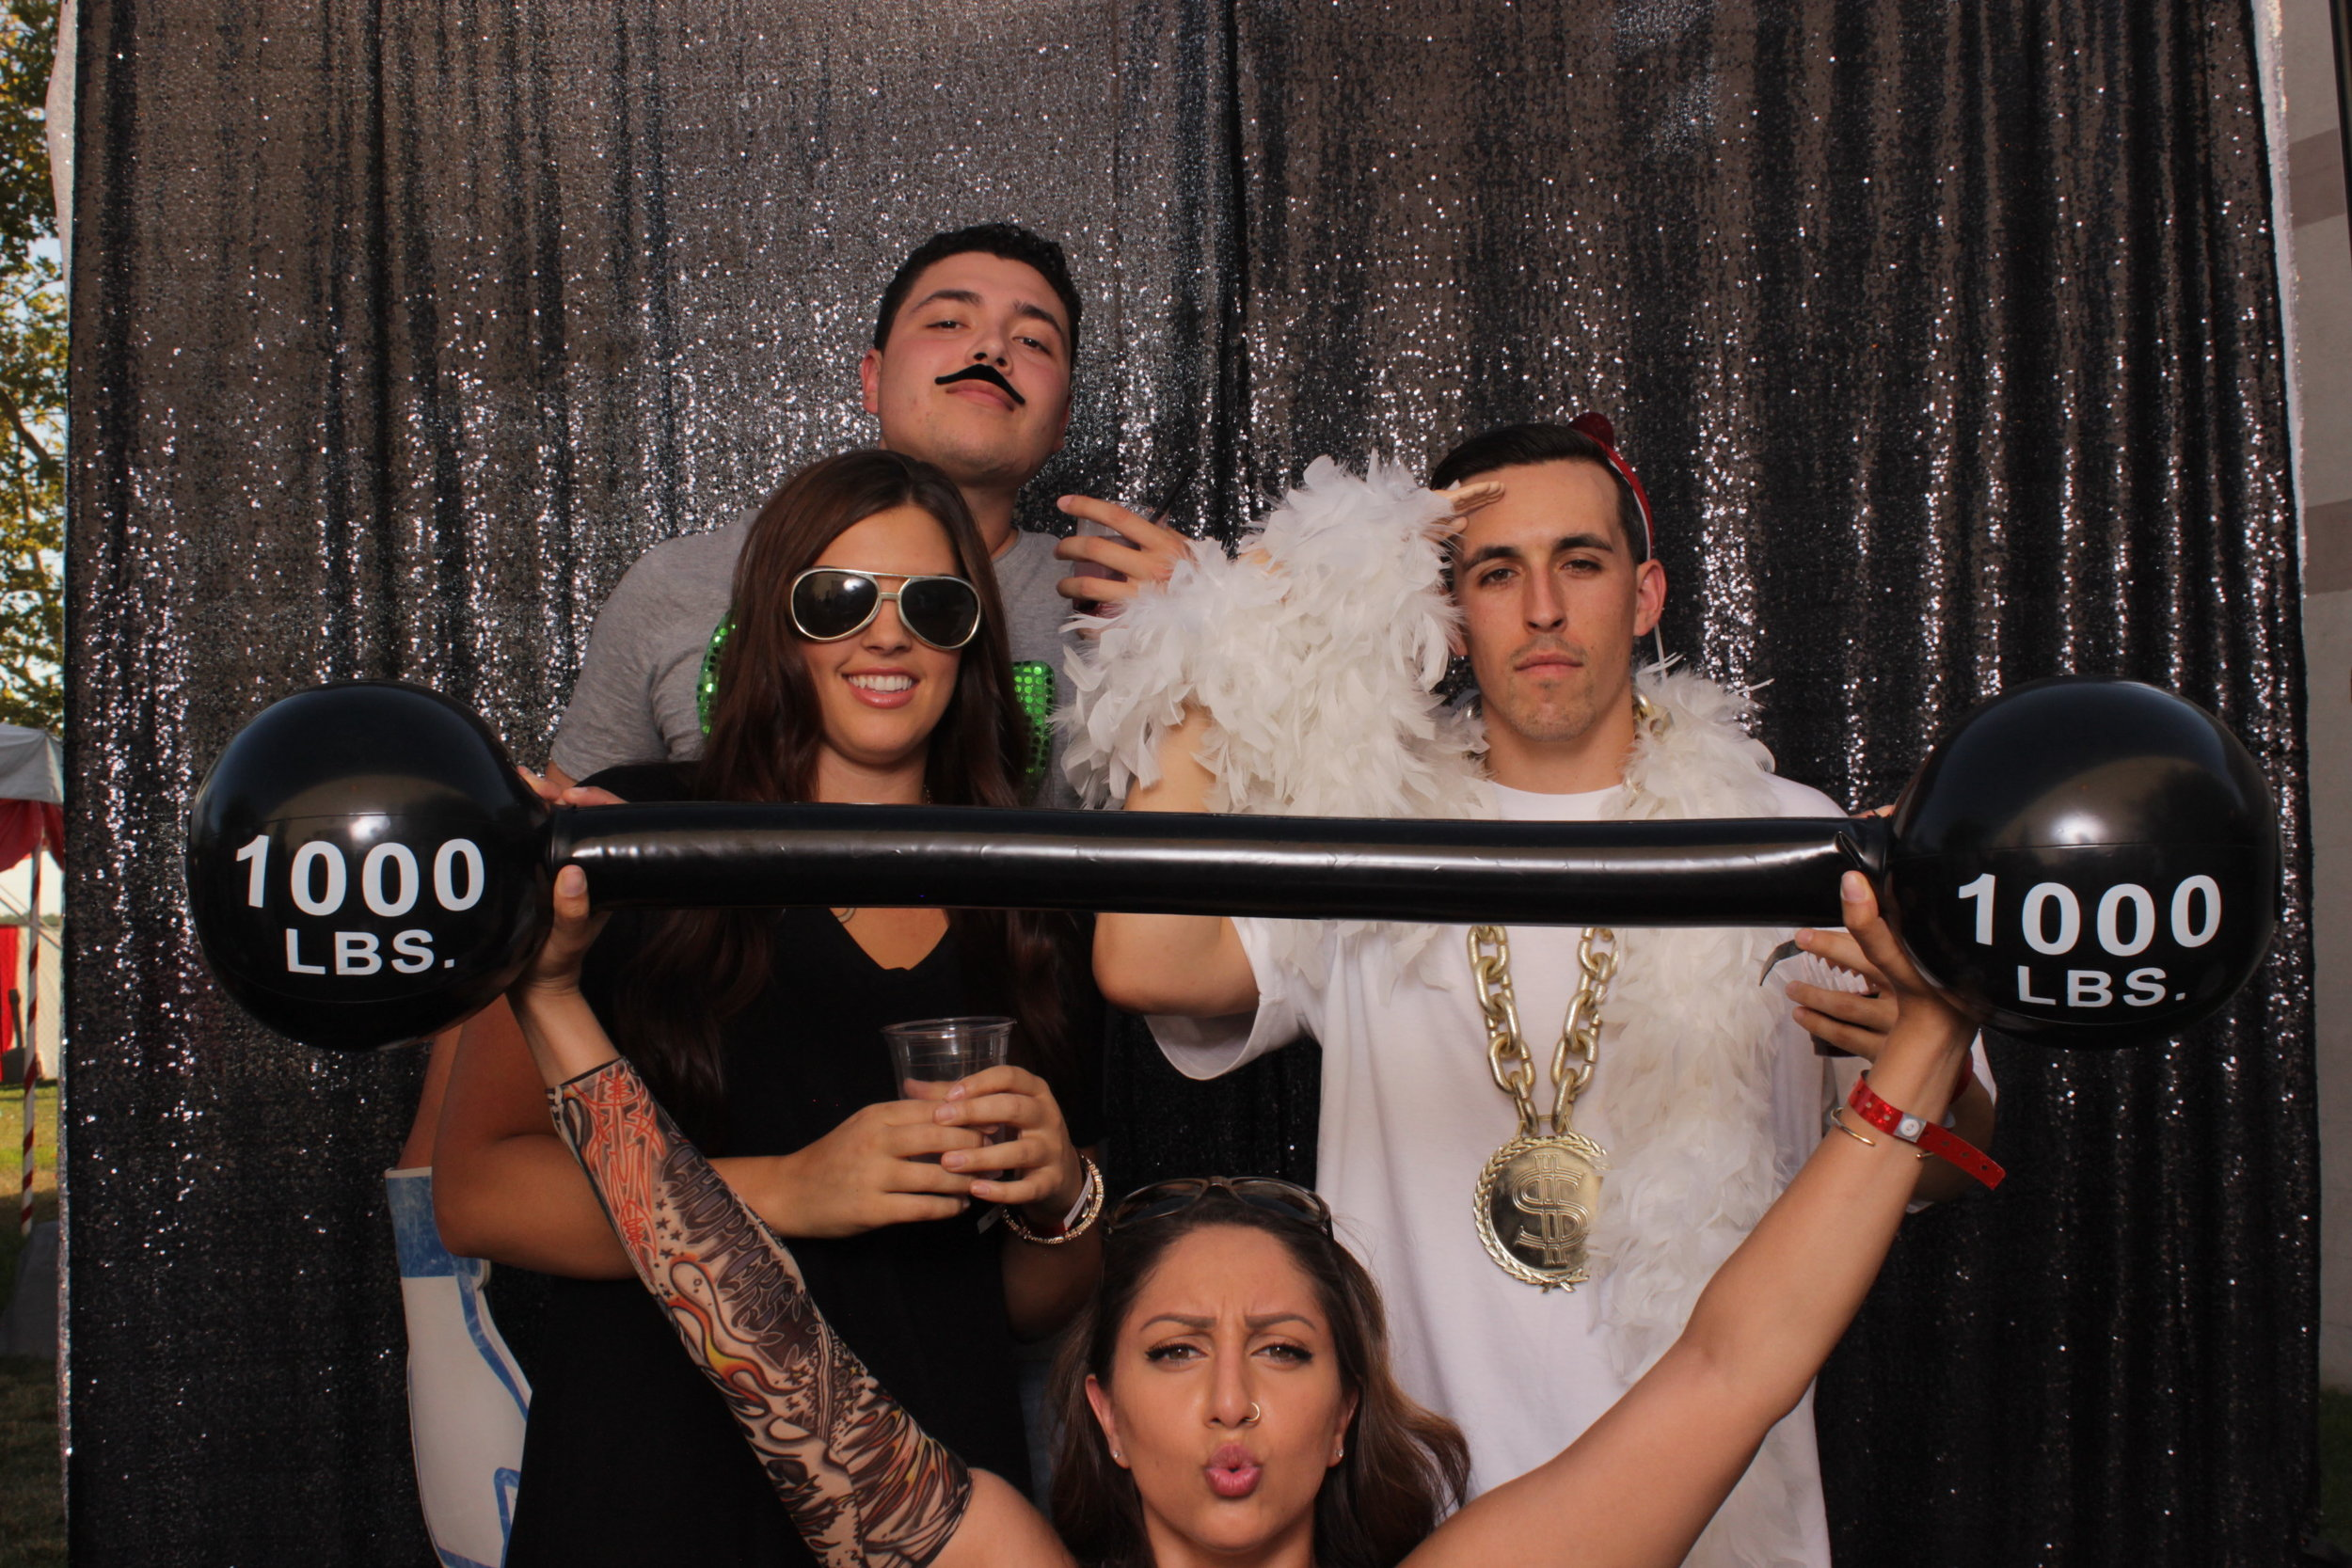 build-corporate-party-photo-booth-rental-weight-lifter